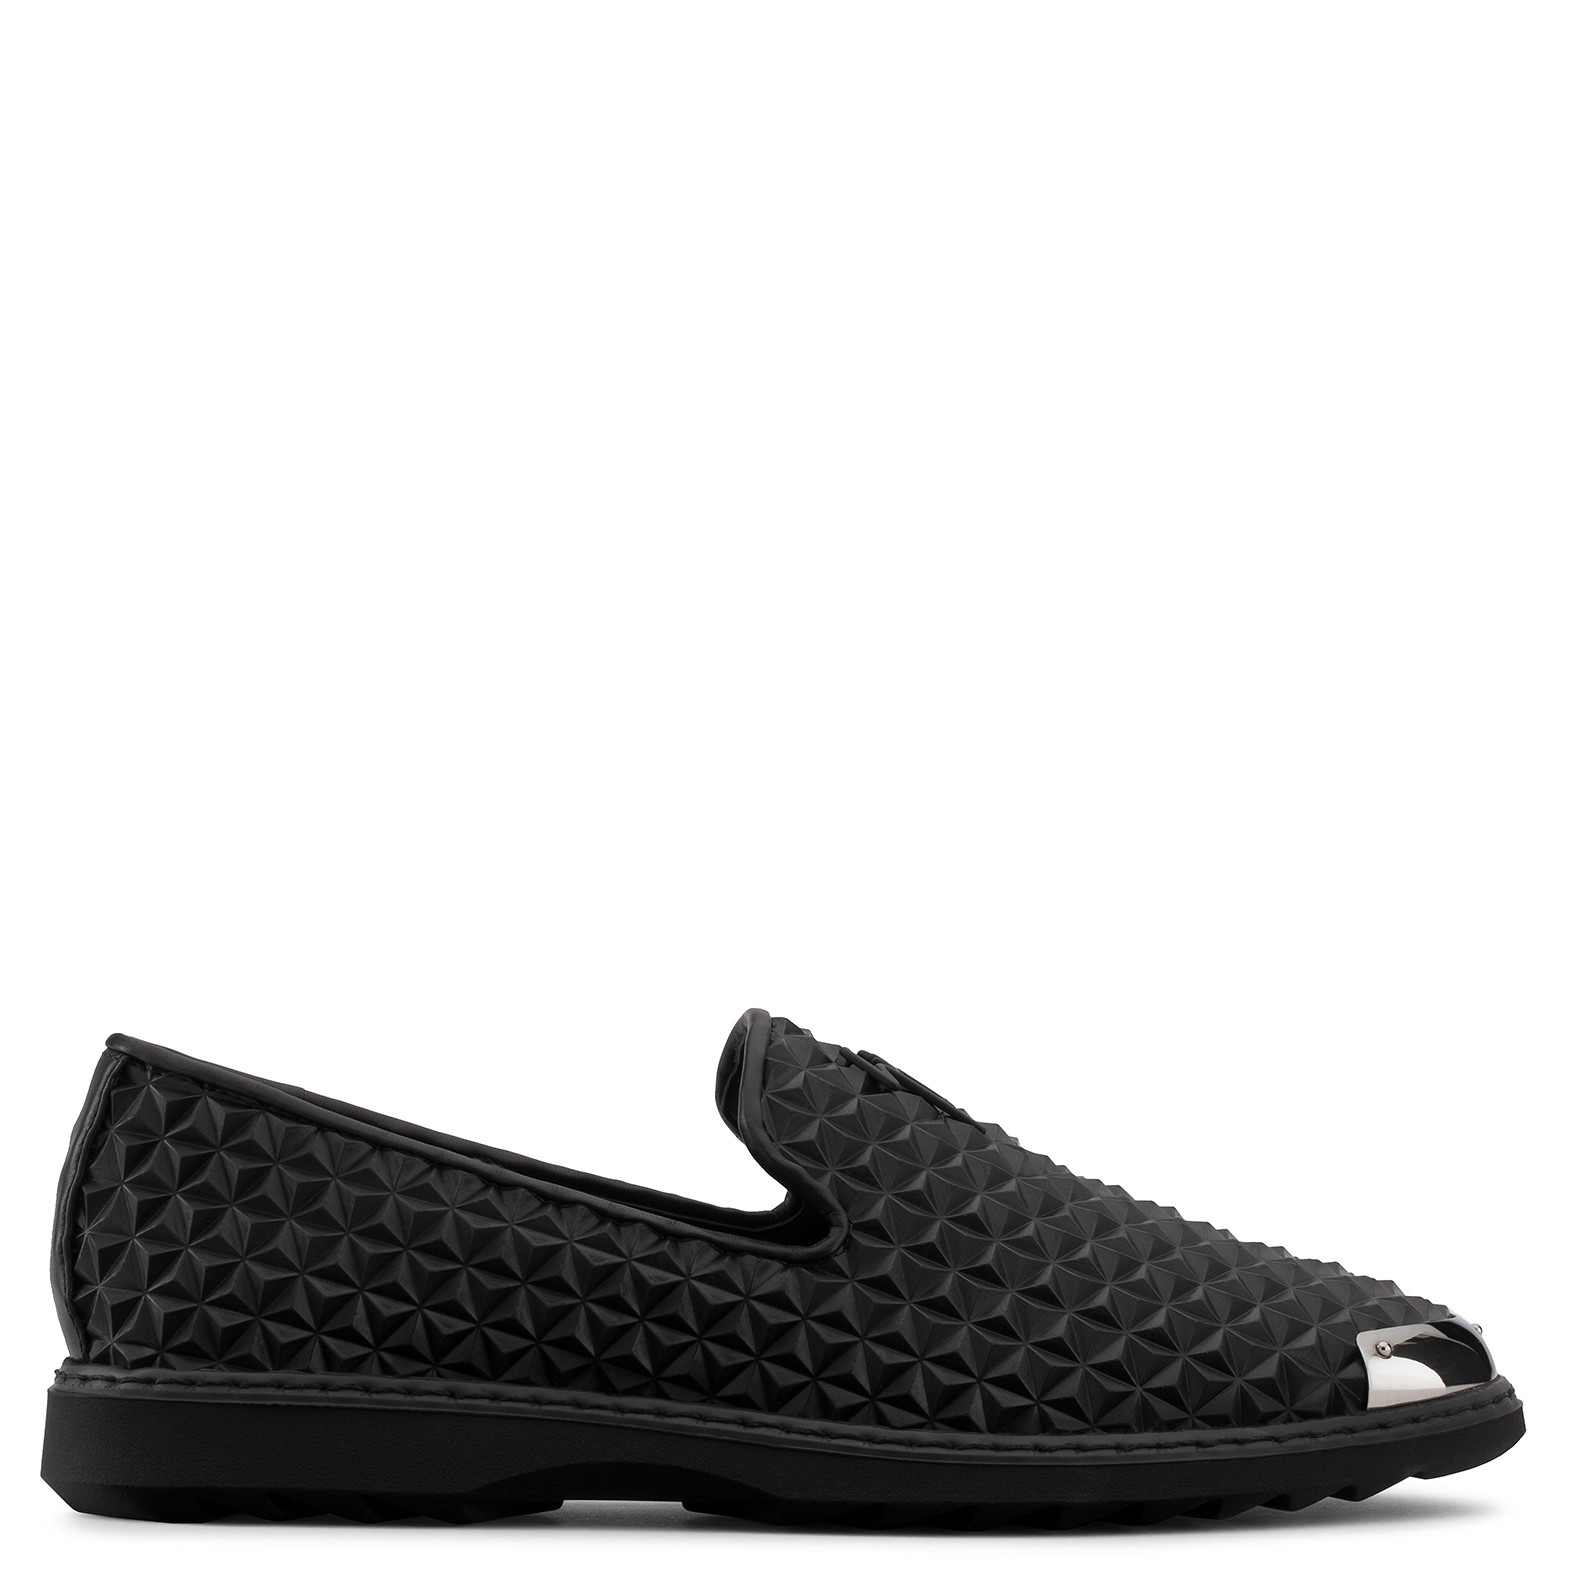 Free Shipping Professional Footlocker Cheap Price Giuseppe Zanotti Black 3D printed leather loafer with metal tip CEDRIC MANHATTAN Buy Cheap Sneakernews Order Shop 3CgnQ